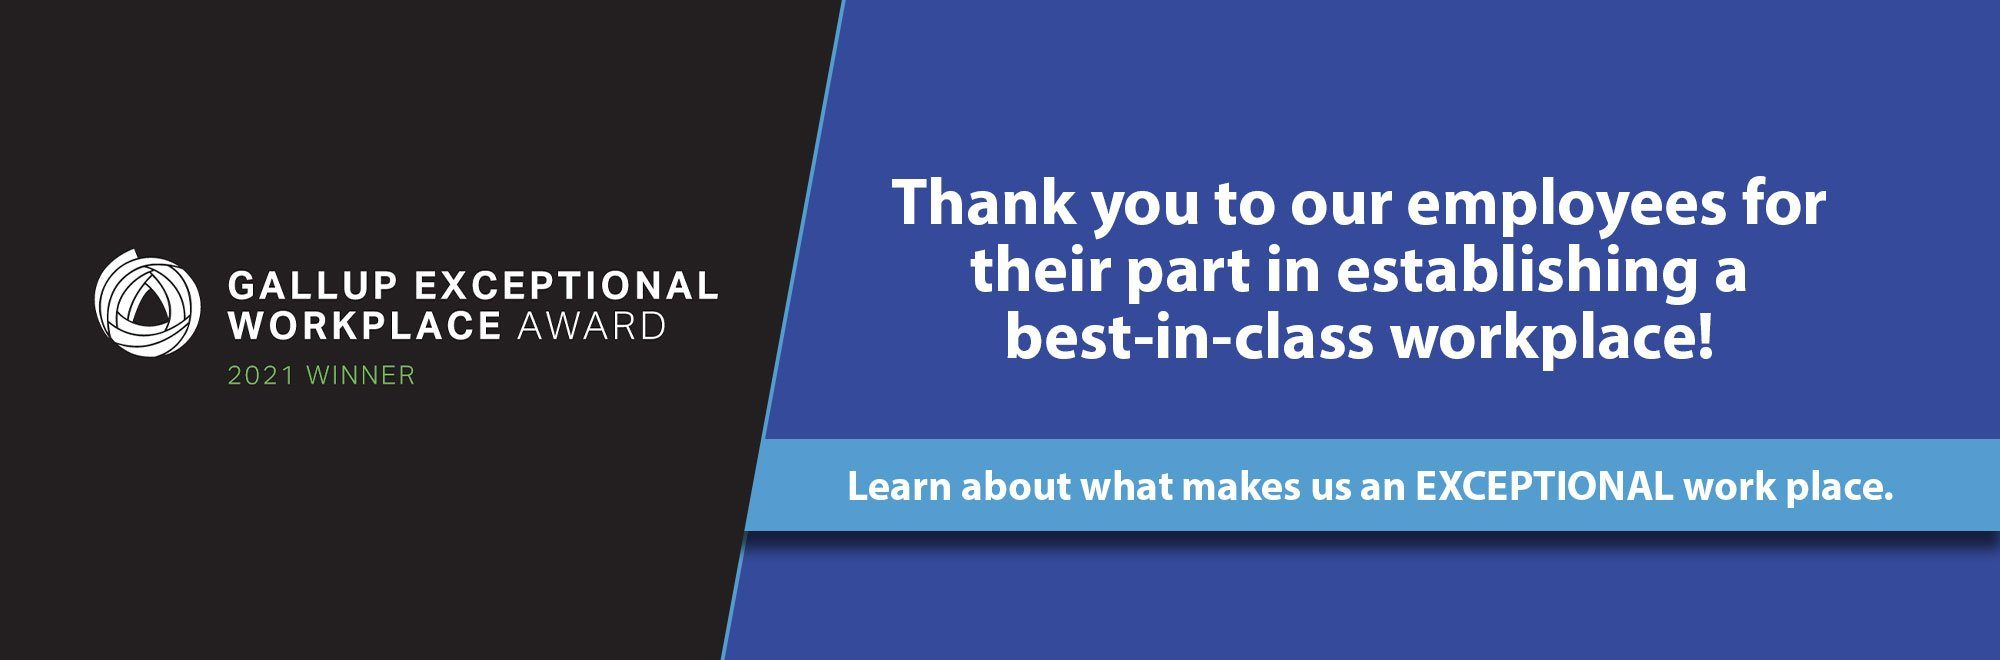 Thank you to our employees for their part in establishing a best-in-class workplace! Learn about what makes us an EXCEPTIONAL work place.